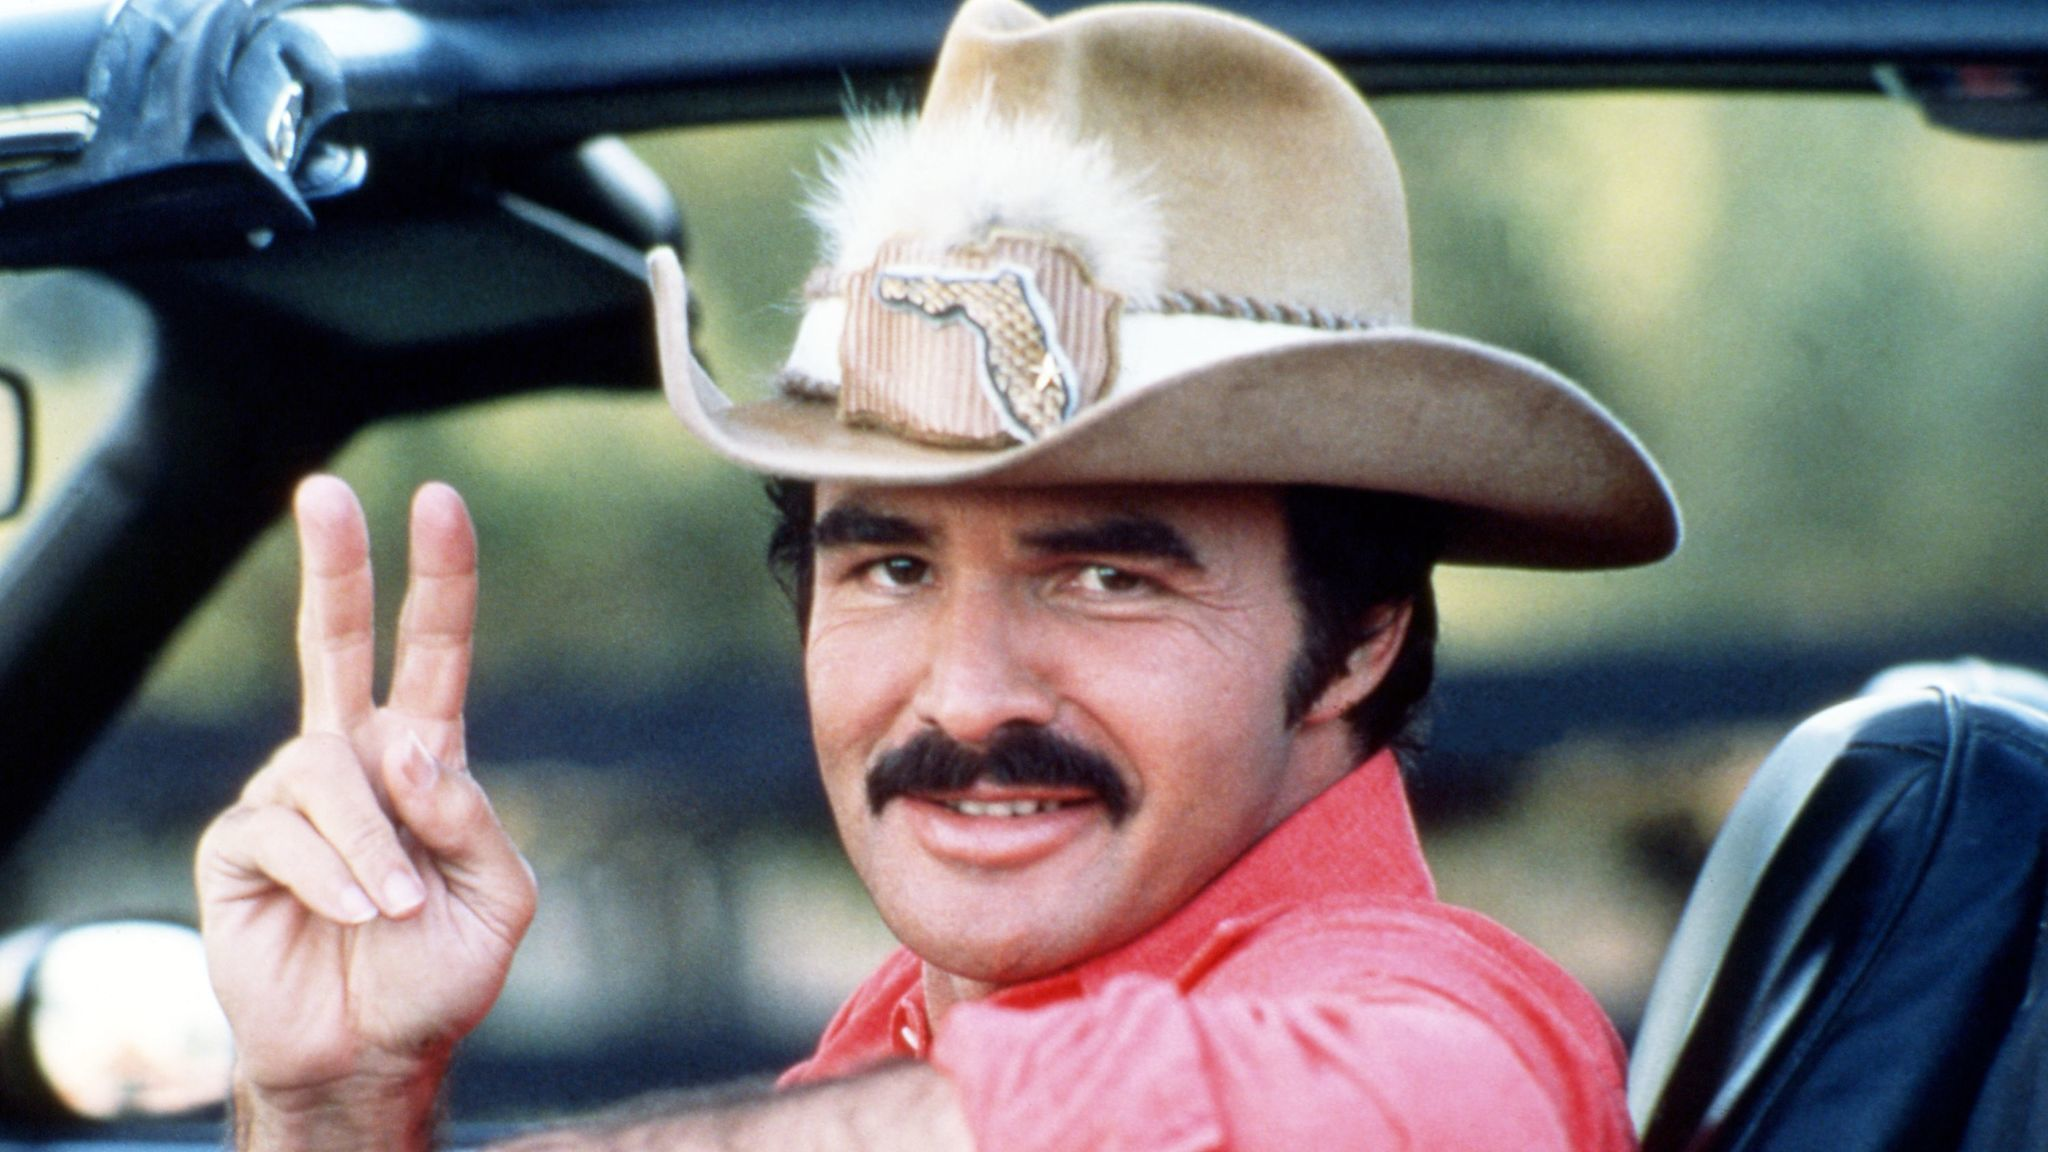 2017 Smokey And The Bandit Trans Am >> The high jinks and despair of the Southern man from 'Smokey and the Bandit' to the new 'Logan ...